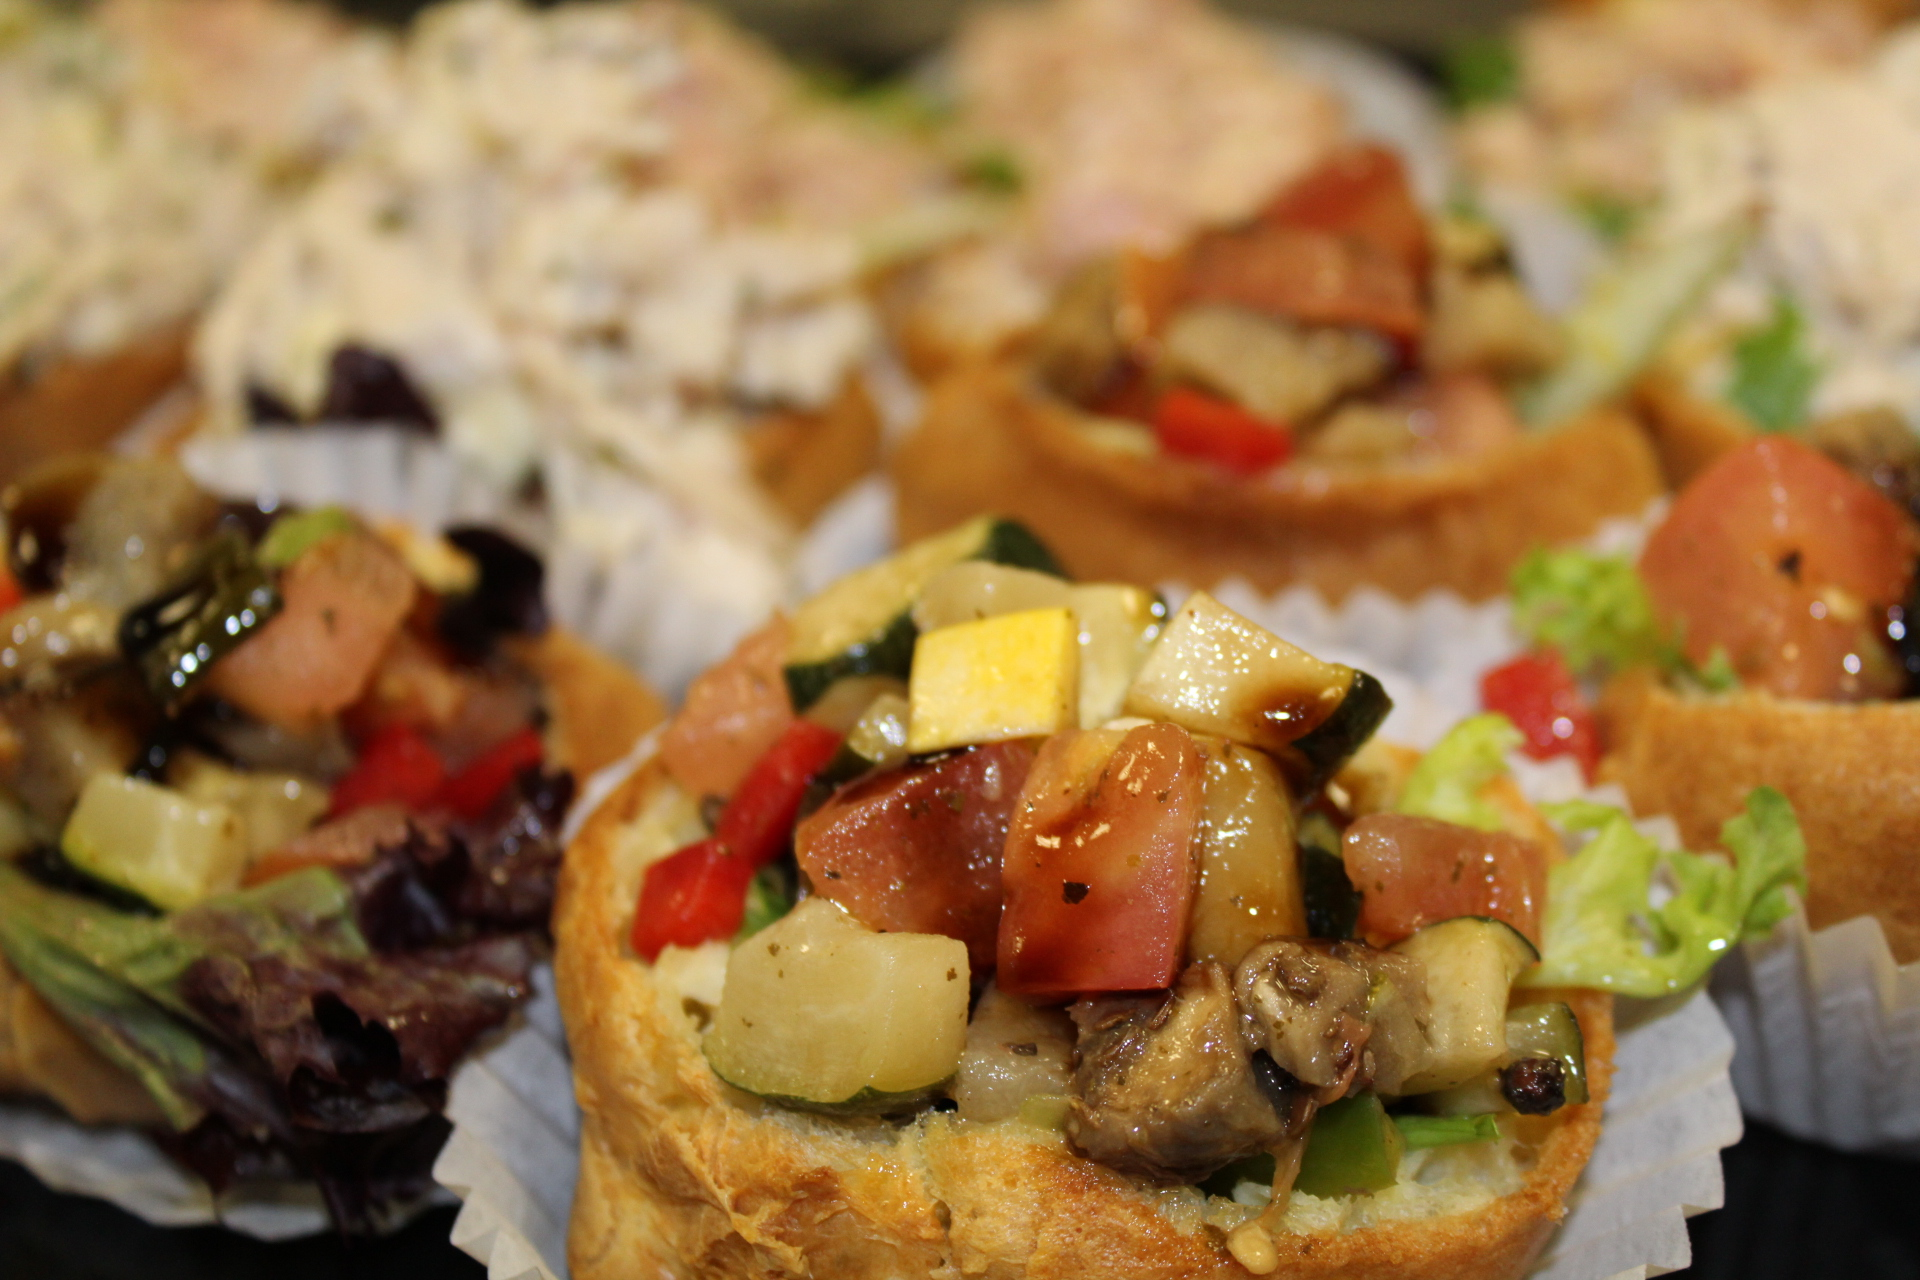 Catering Menu - Our Team understands each catered meeting or party is different and requires specific needs. Our menu offers a wide variety- whether you're looking for familiar Sandwich Platters or you're aiming to offer food a bit more unique, like our Mini Stuffed Popovers,let us work with you in creating a menu that's guaranteed to meet your needs.